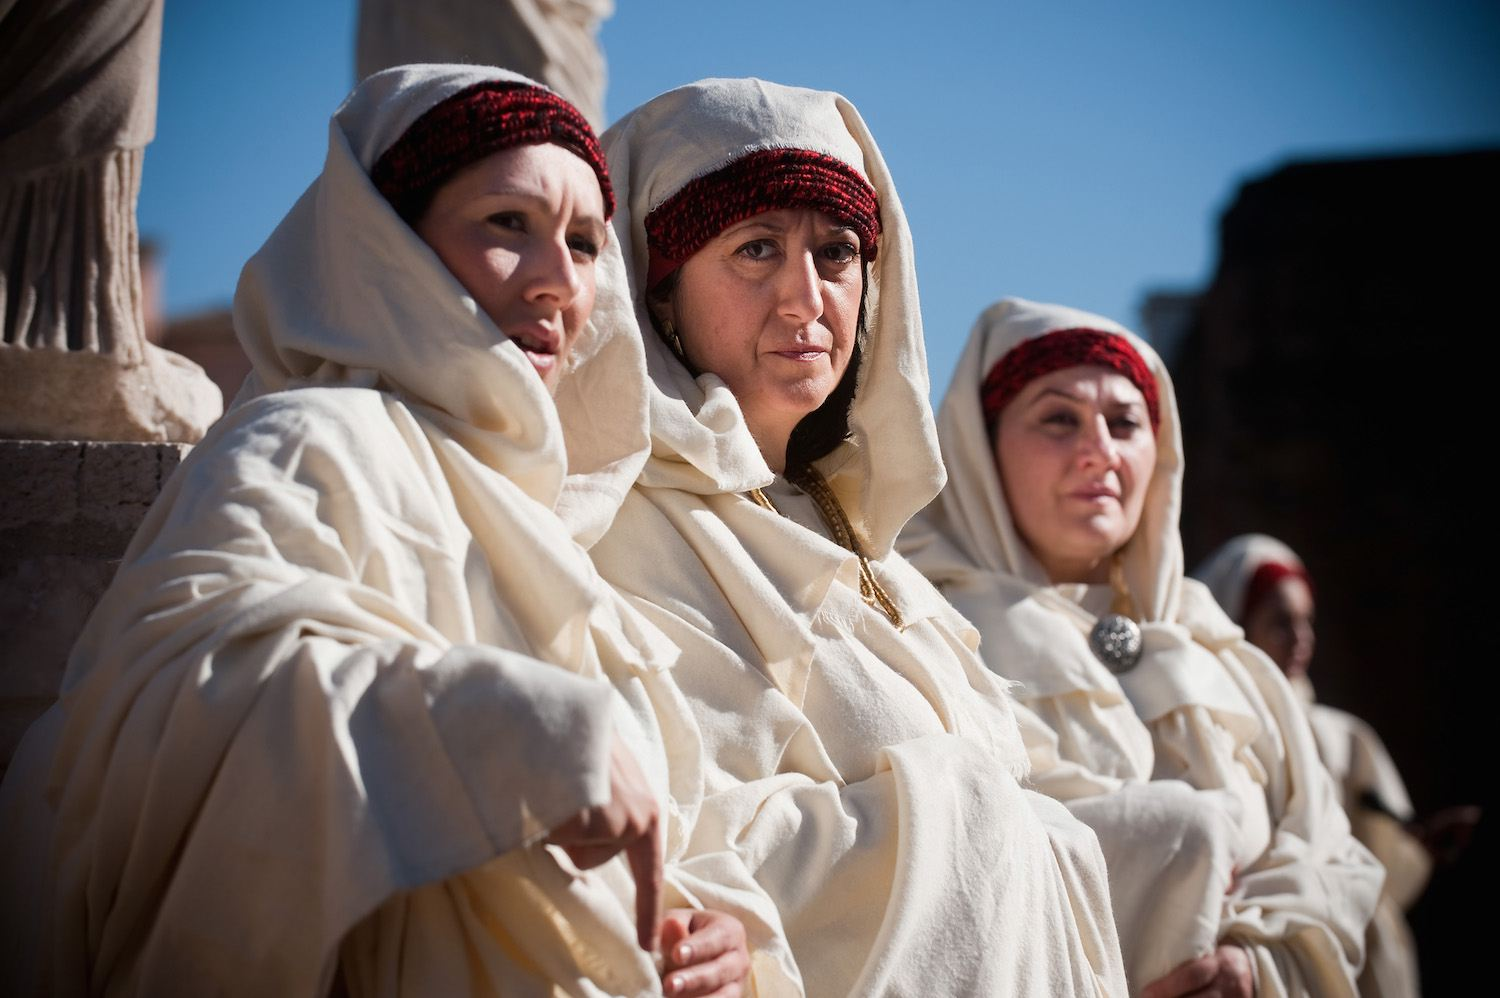 Cloaked Women in Modern Day Rome